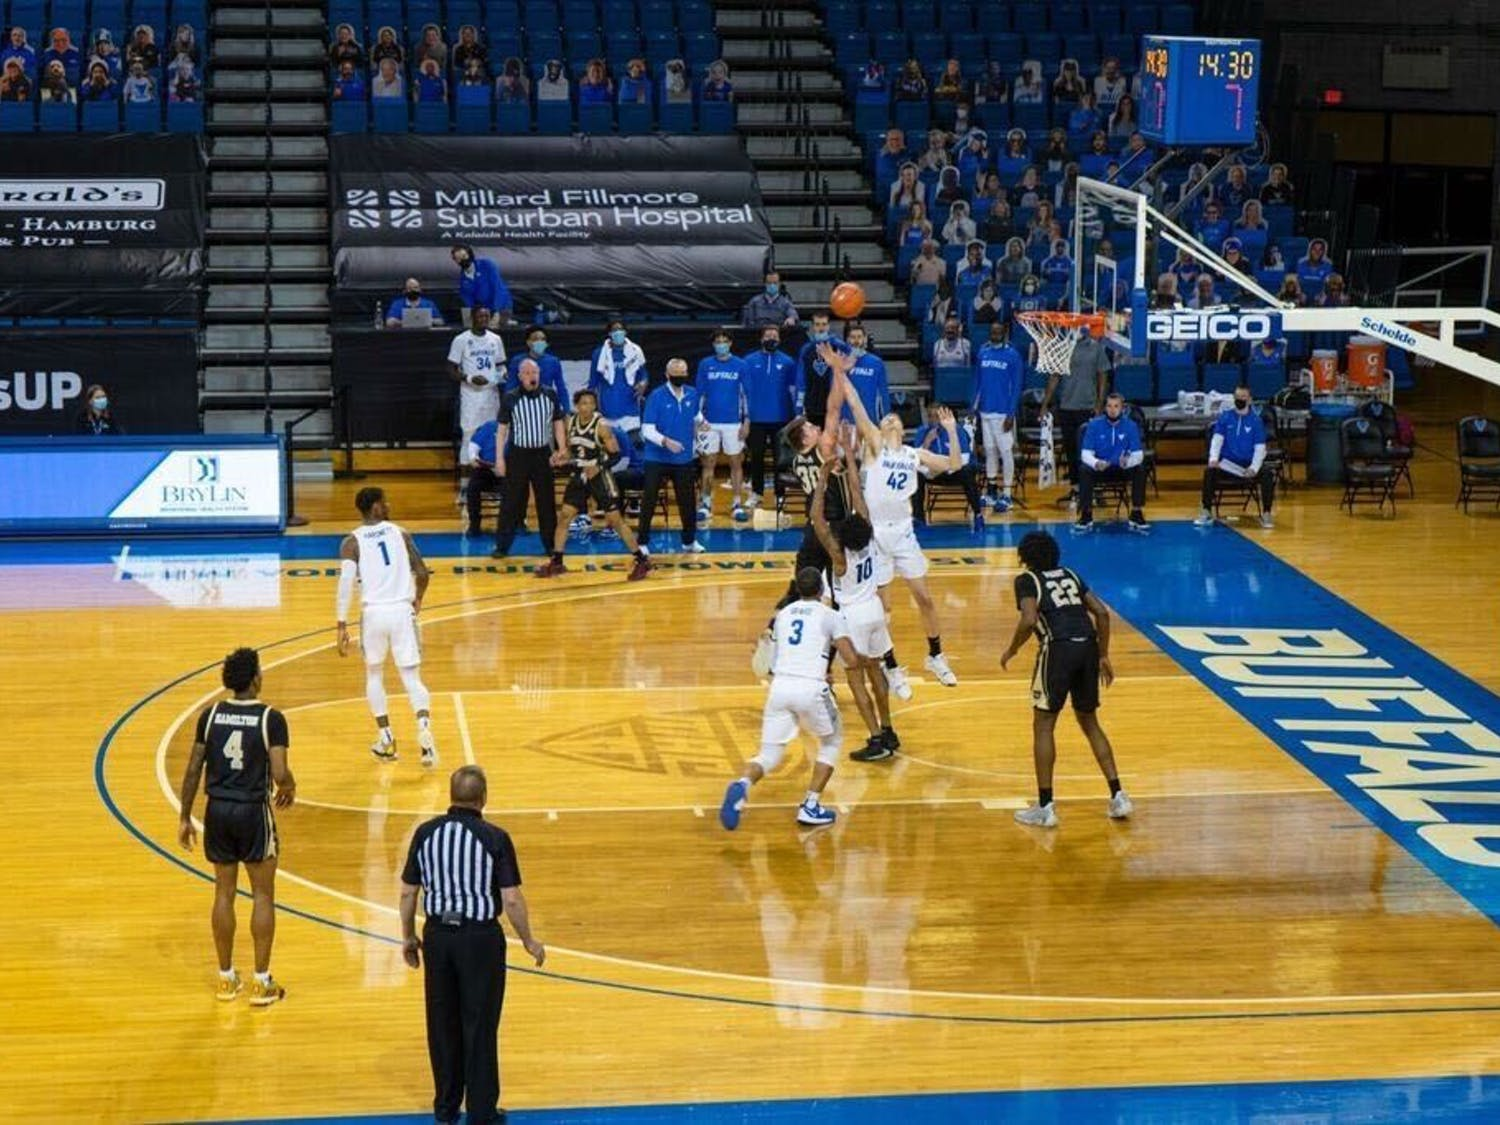 UB men's basketball wins in an 86-54 victory over Western Michigan.